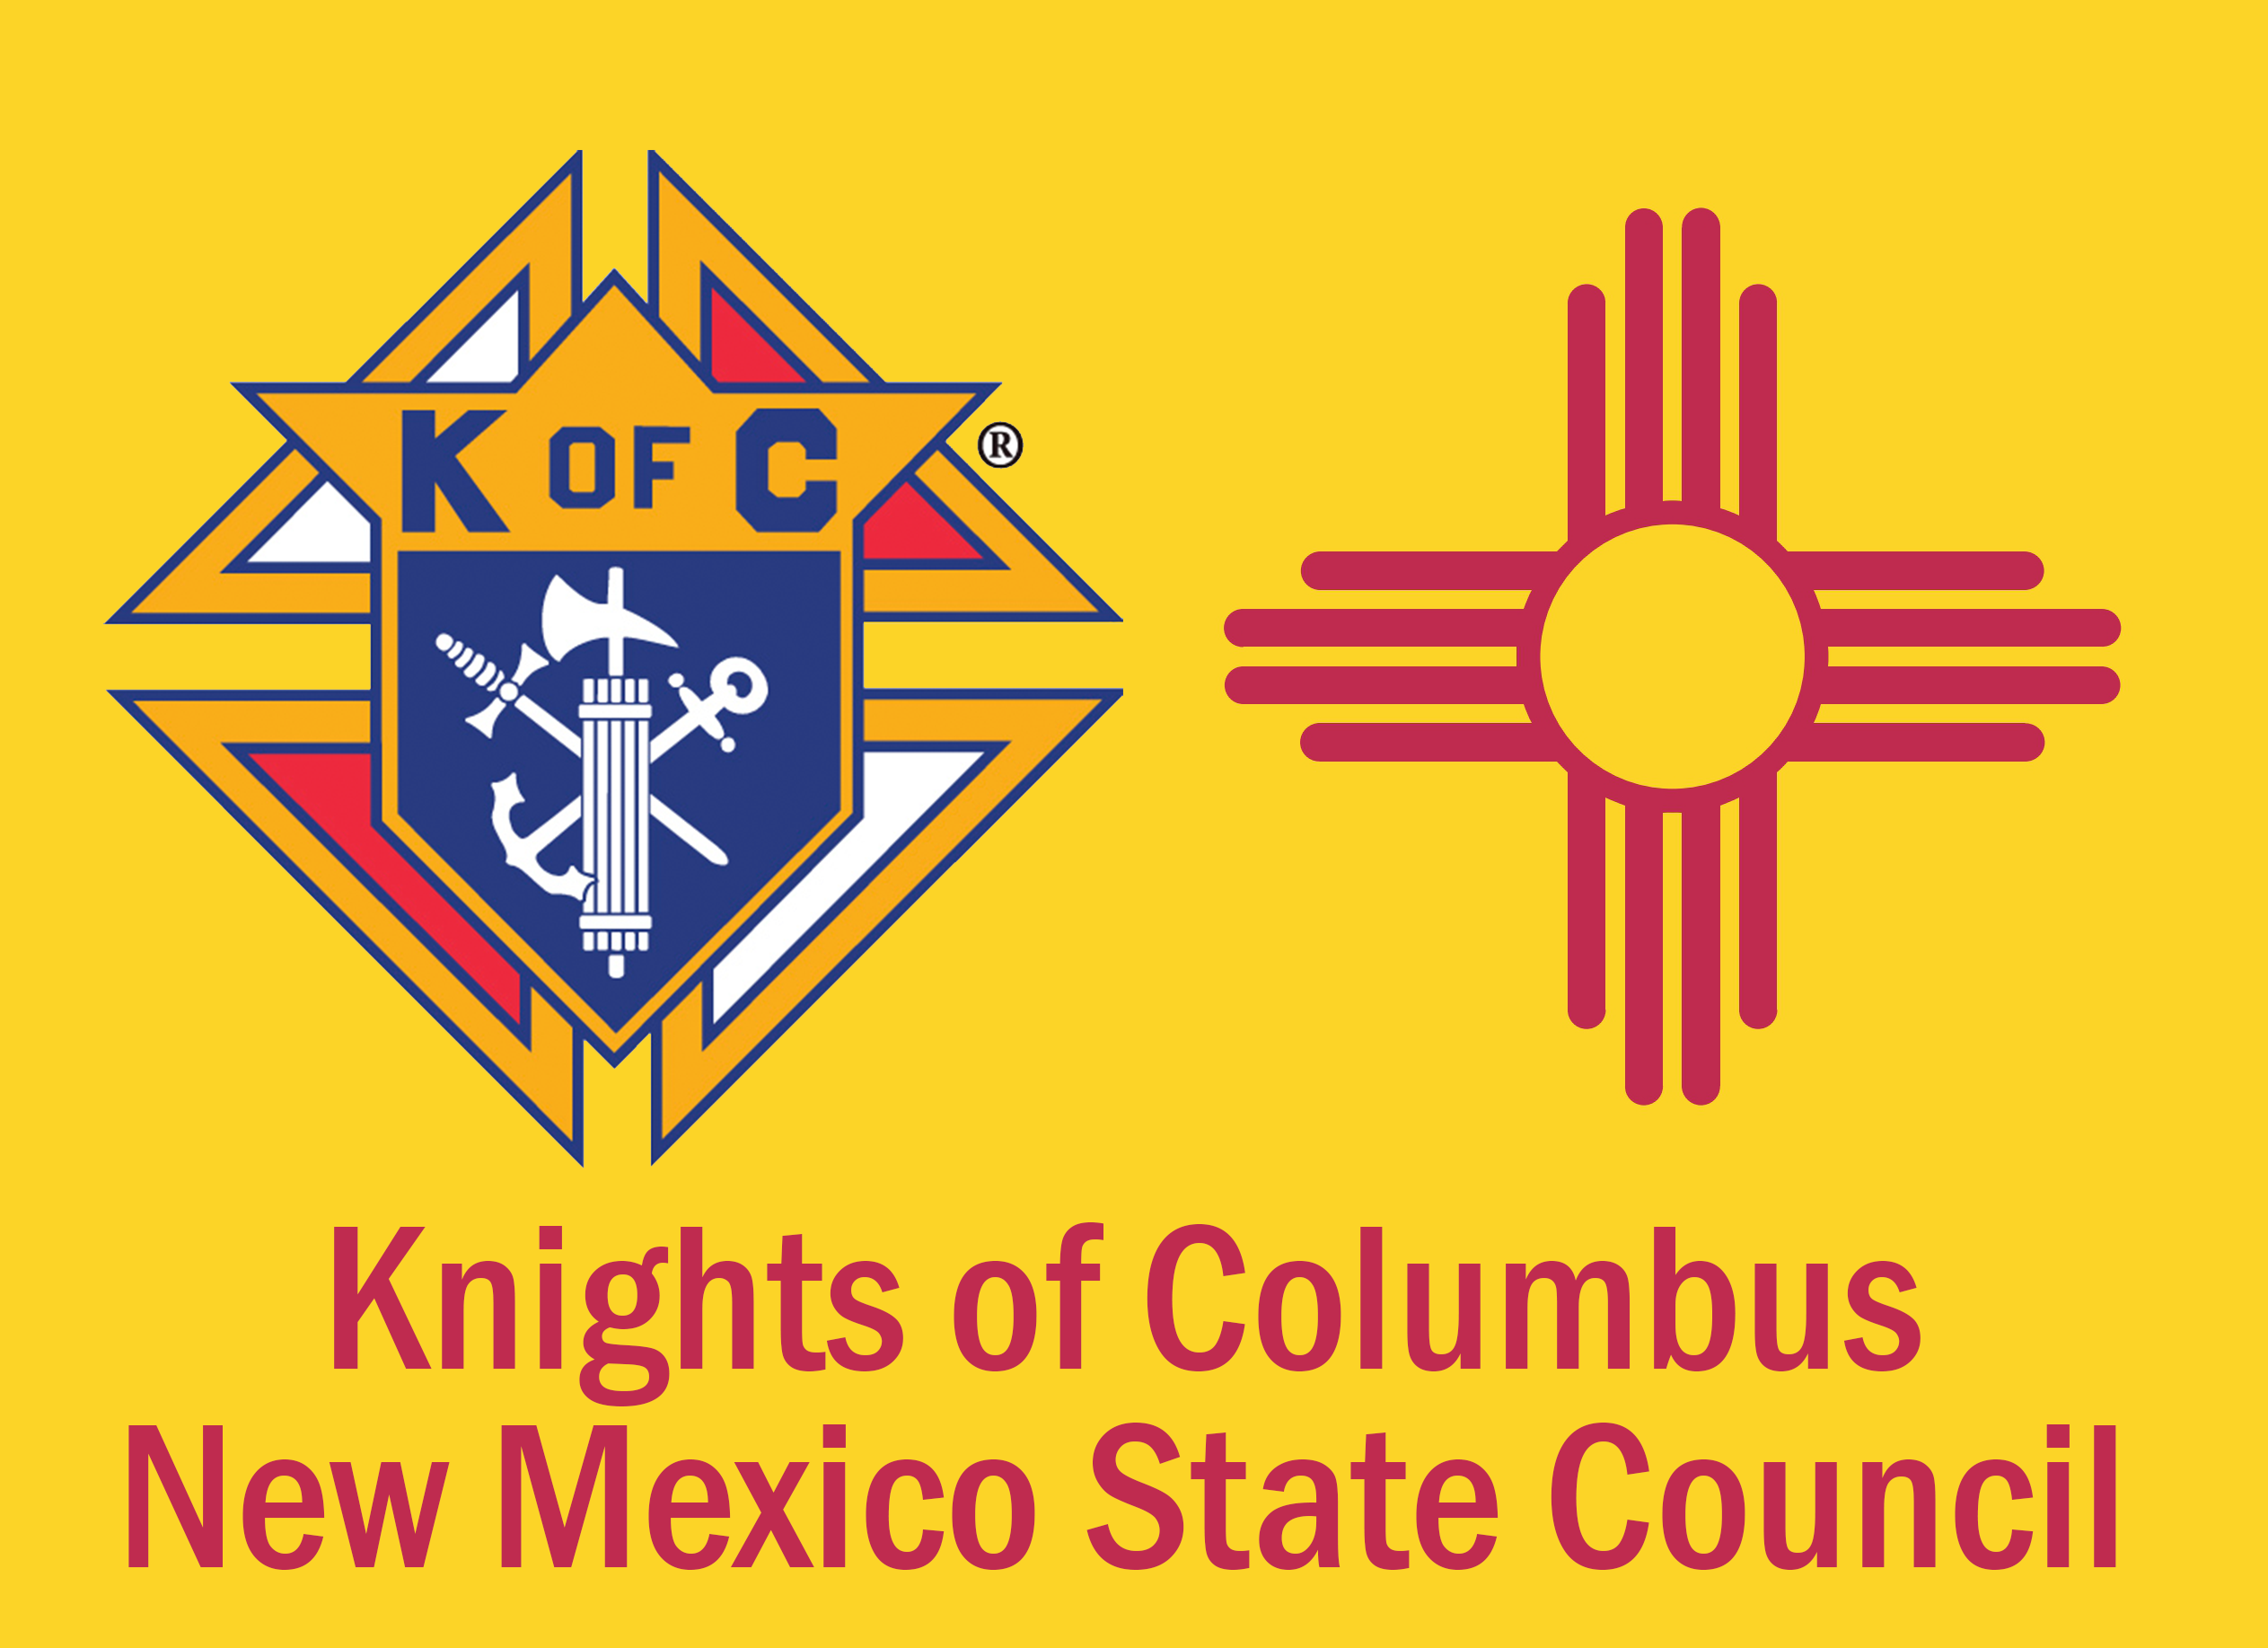 New Mexico State Council of the Knights of Columbus Retina Logo